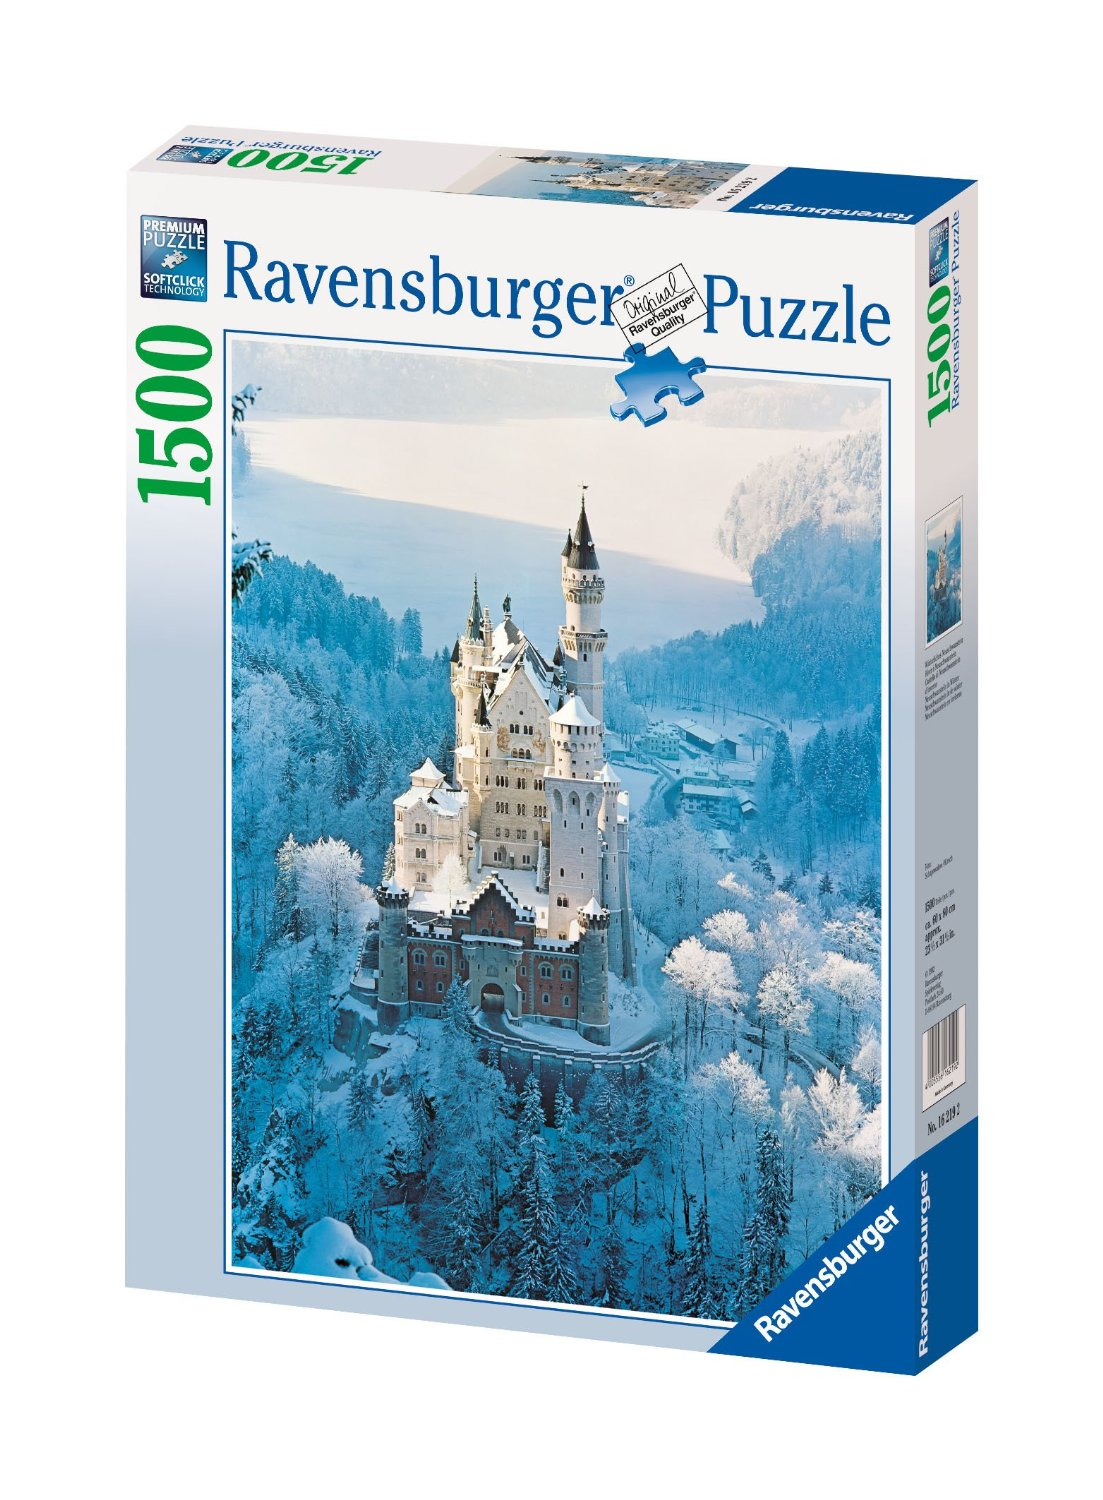 schloss neuschwanstein im winter 1500 teile ravensburger puzzle online kaufen. Black Bedroom Furniture Sets. Home Design Ideas